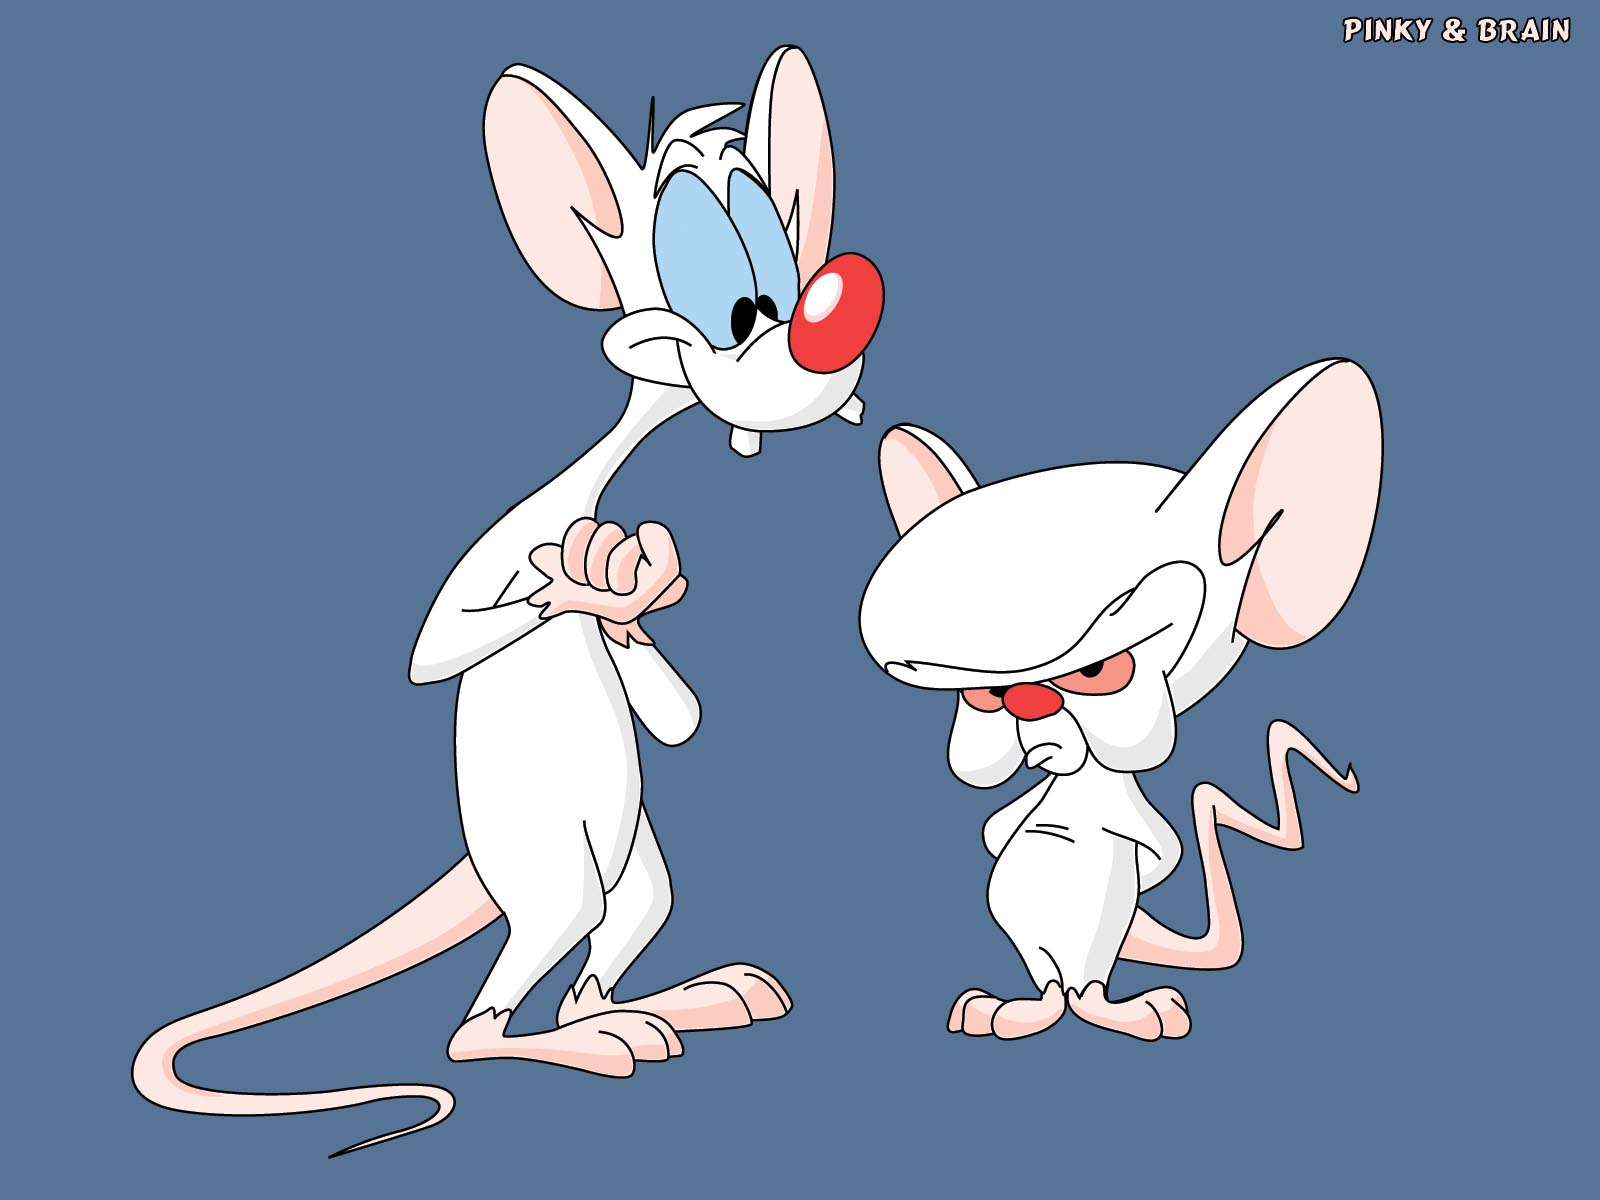 Fun Facts About Pinky And The Brain: Pinky And The Brain (characters)